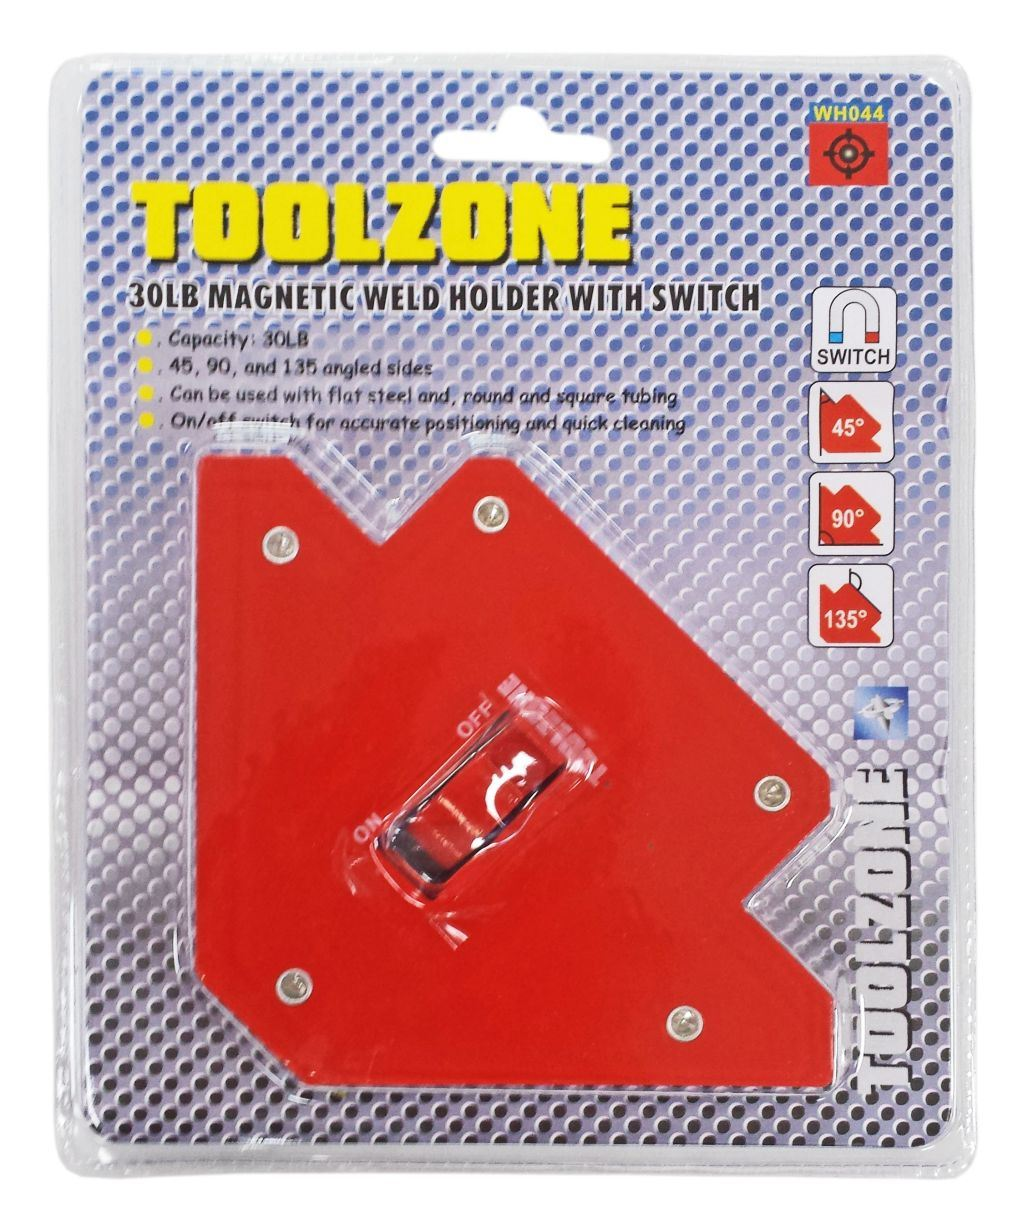 Toolzone 30Lb Magnetic Weld Holder Switched